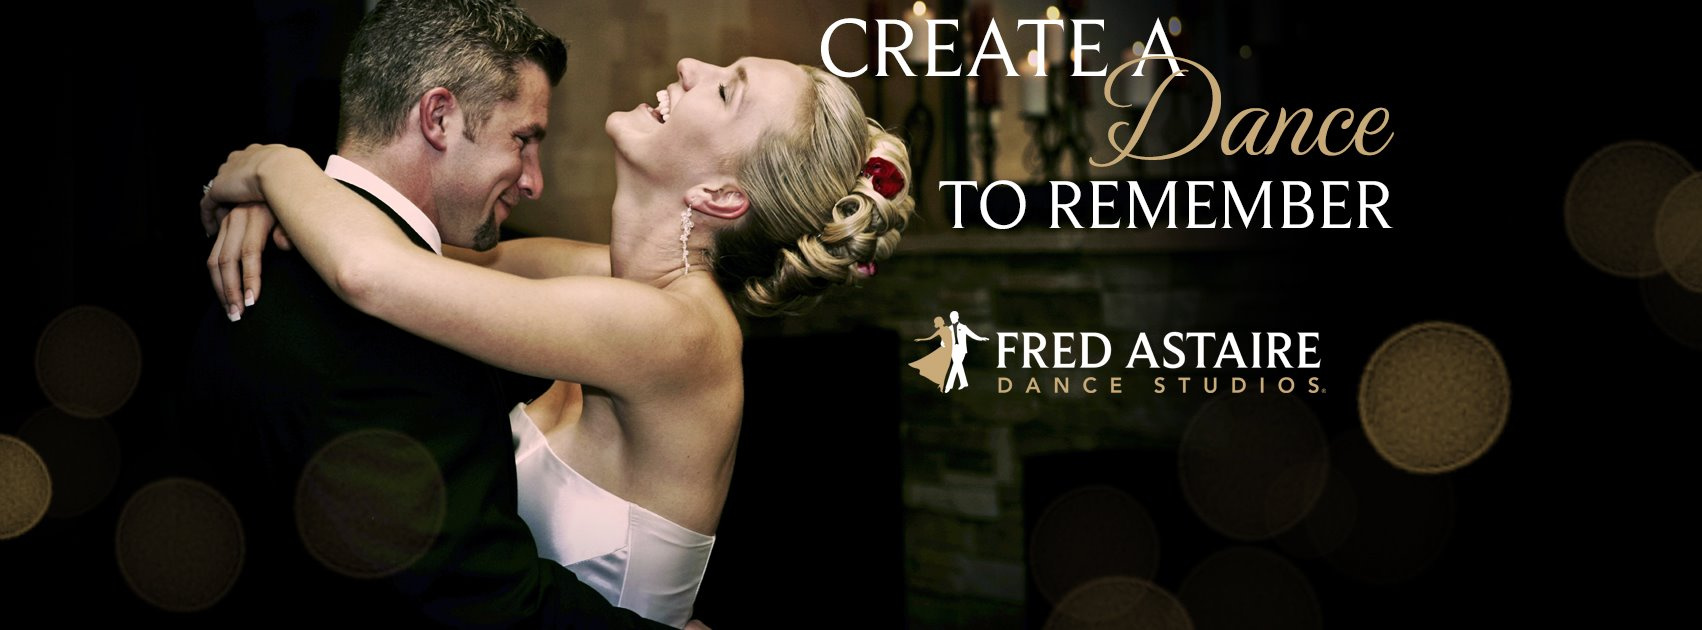 Wedding Dance Southbury Fred Astaire